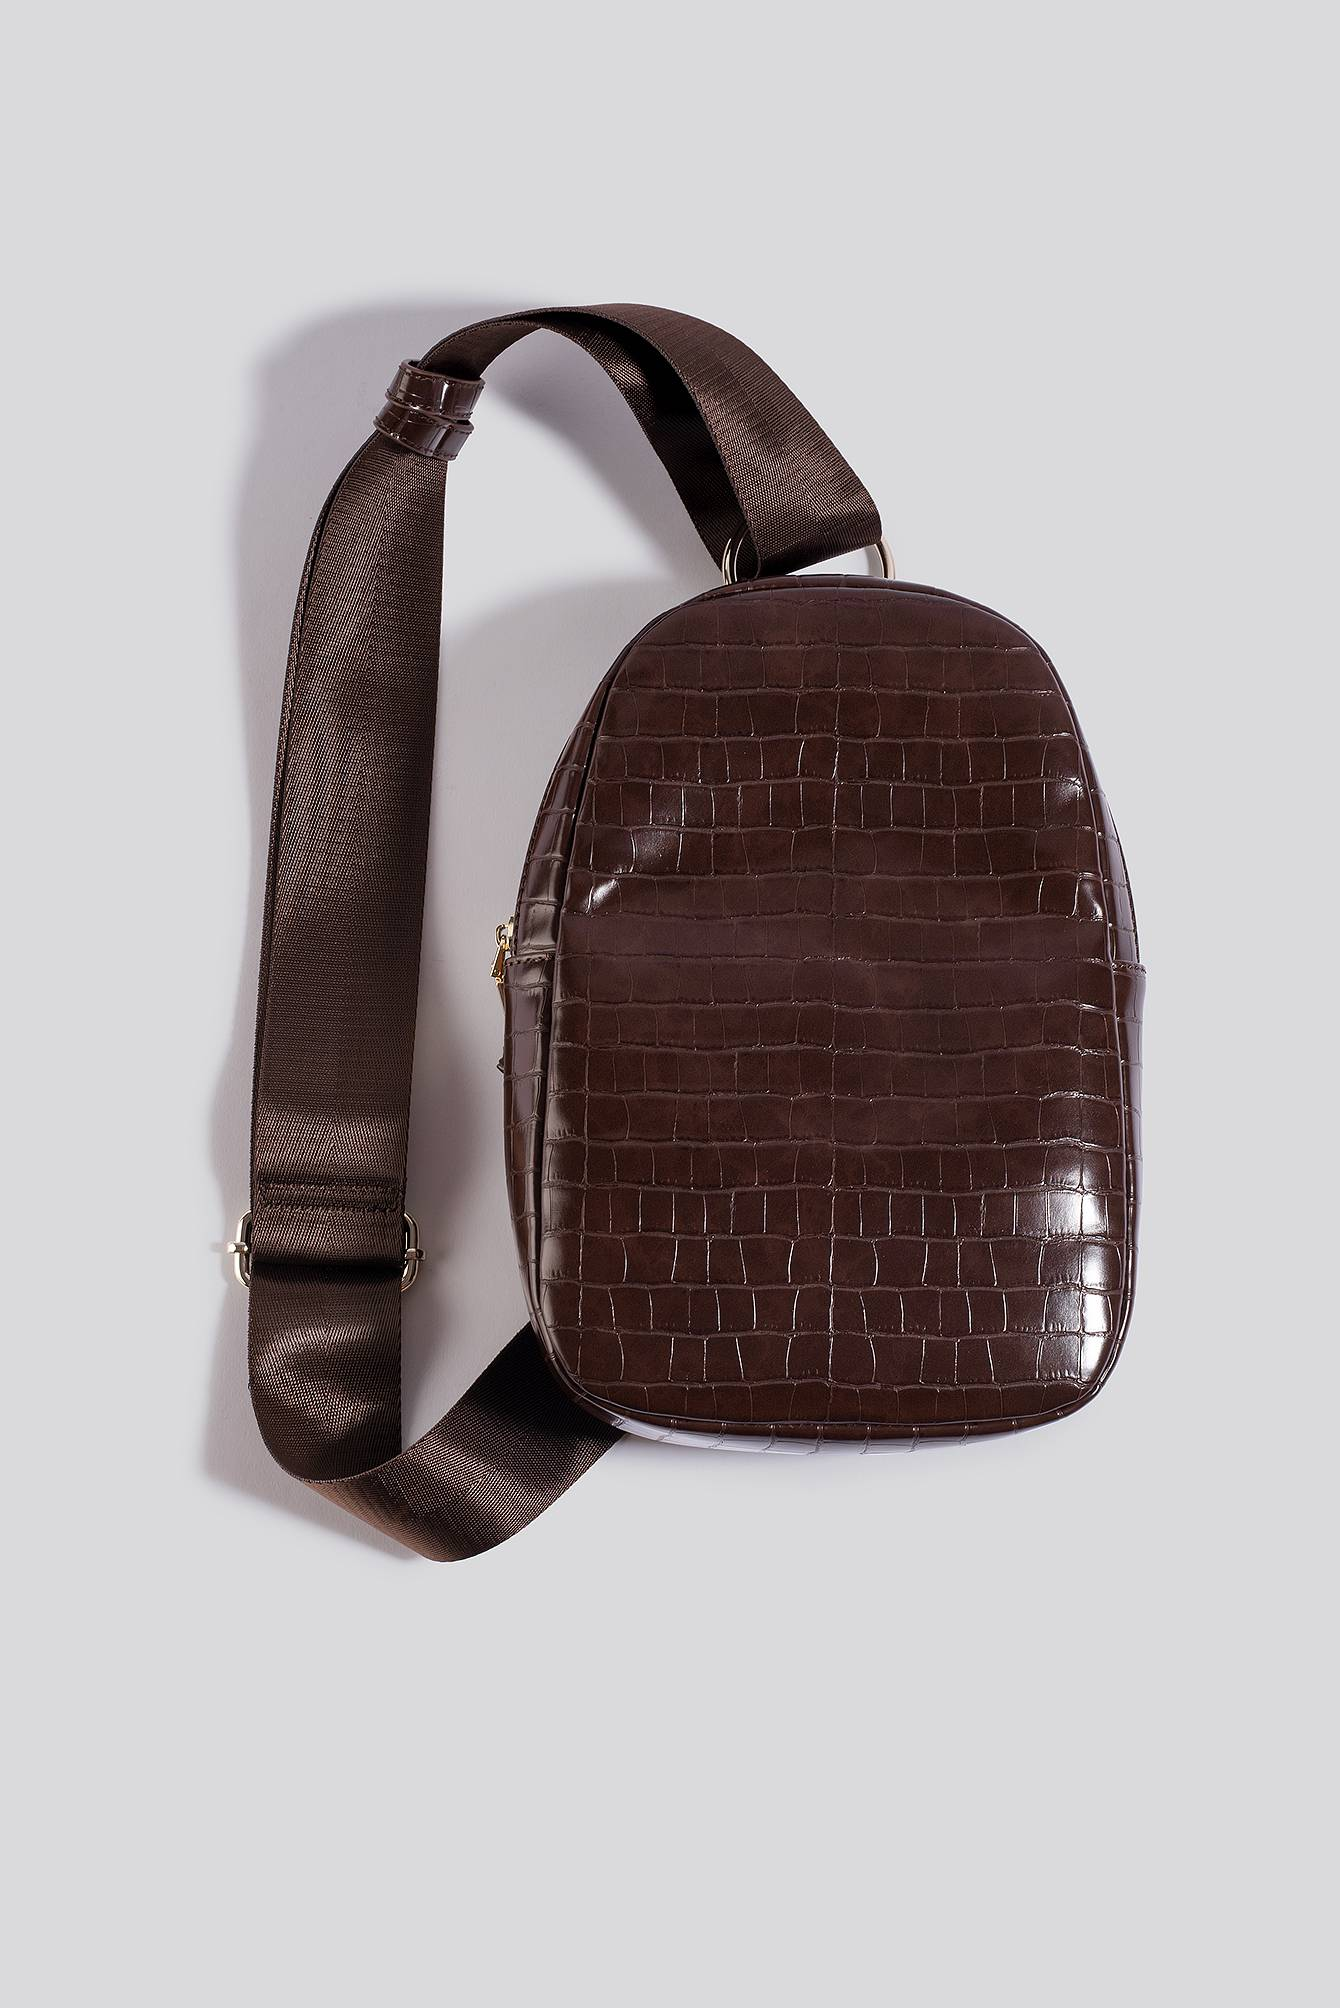 NA-KD Accessories One Strap Sling Bag - Brown